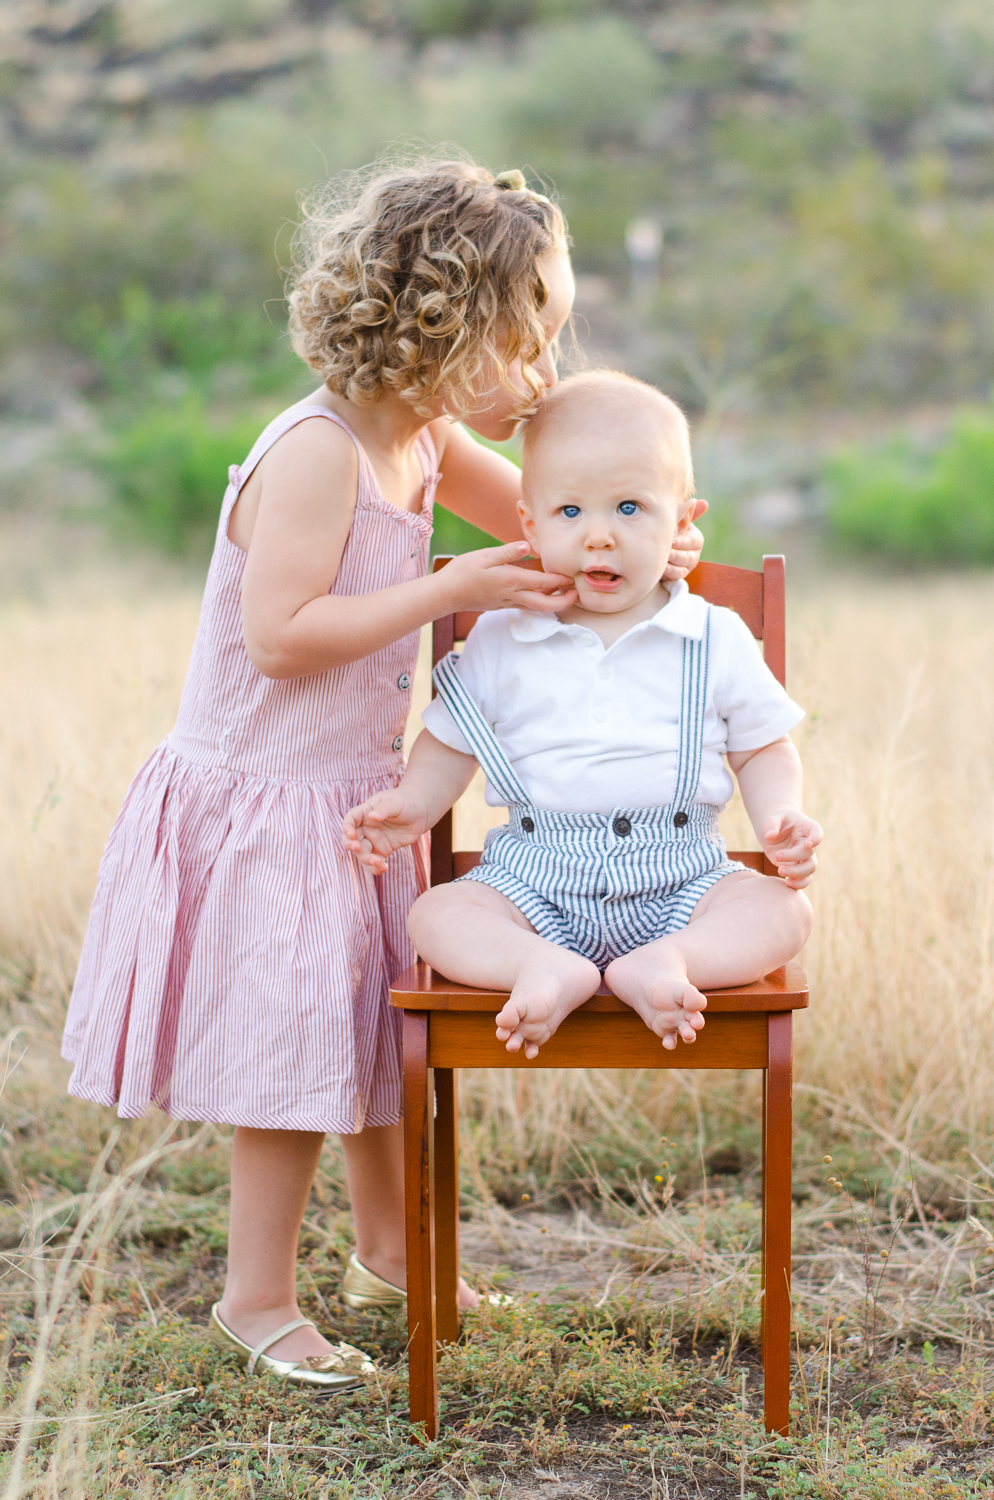 glendale arizona family photographer -03802015.jpg